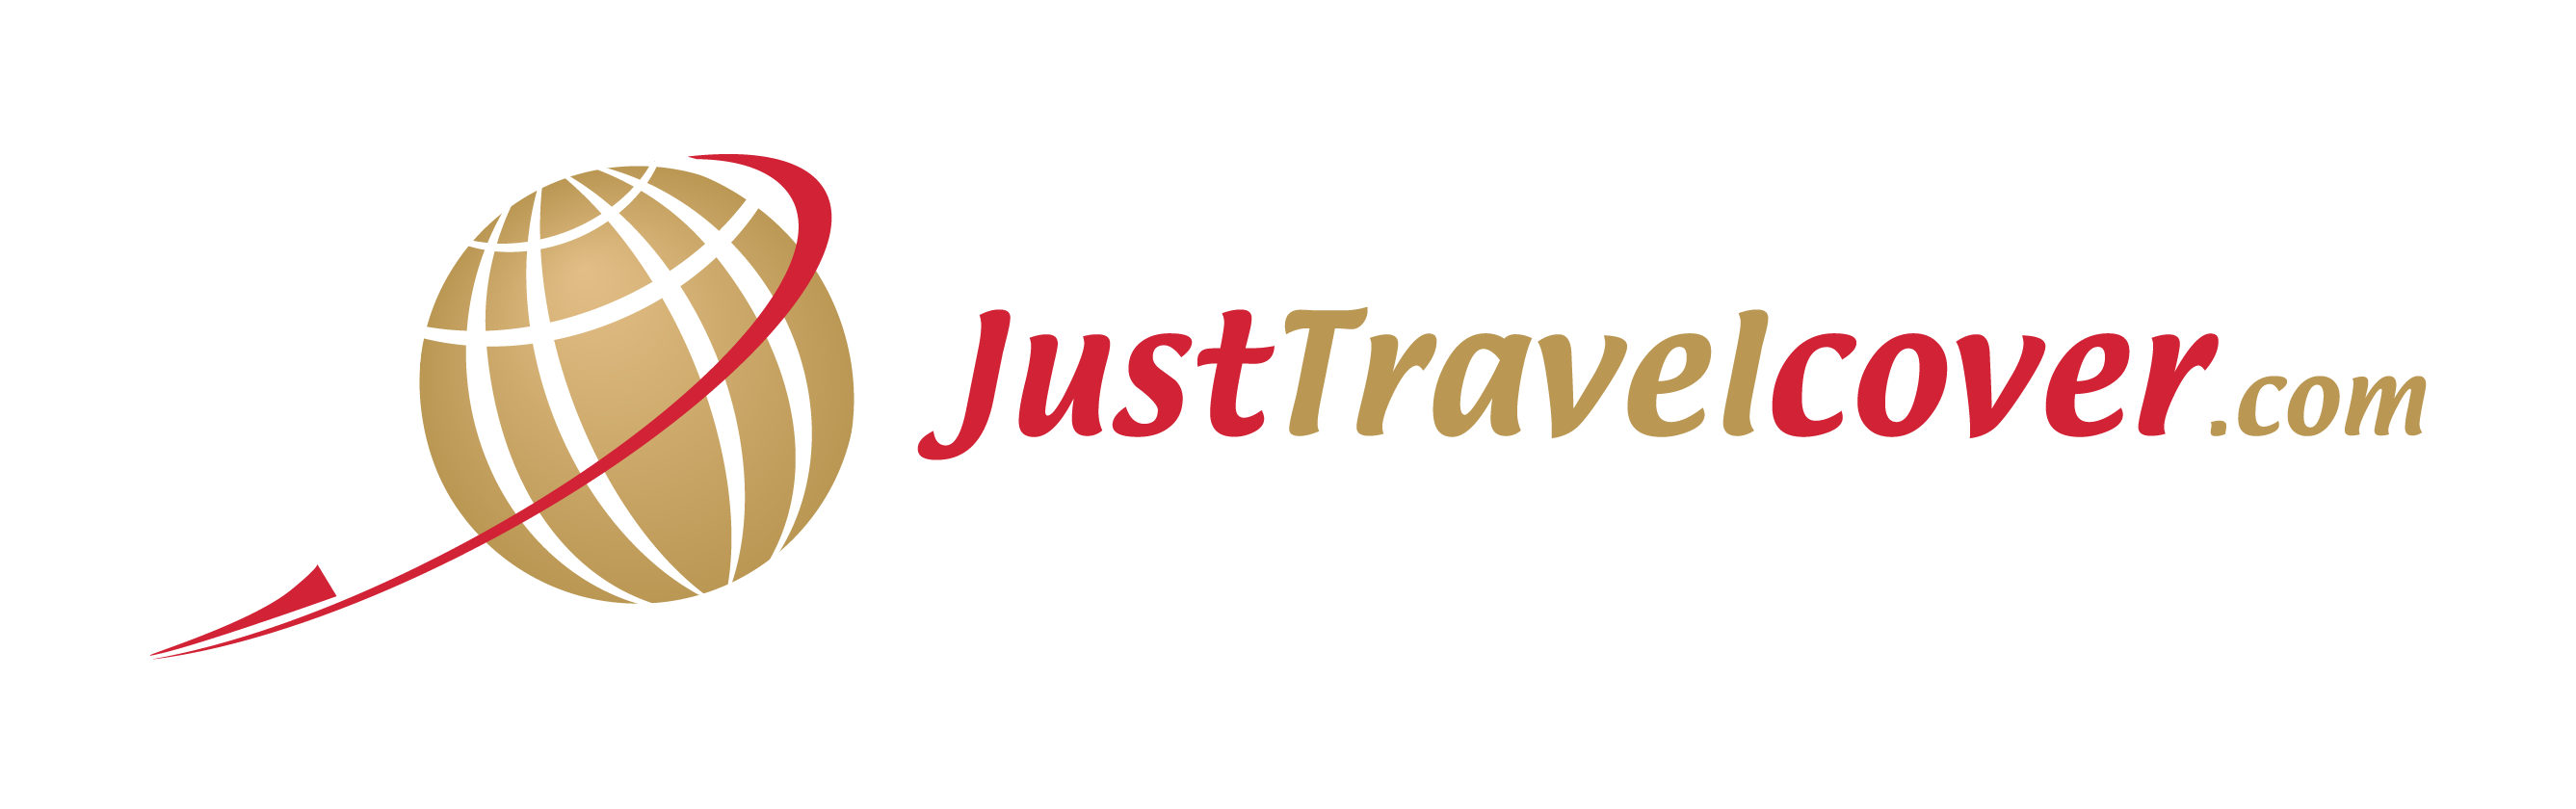 Read Just Travel Cover Reviews